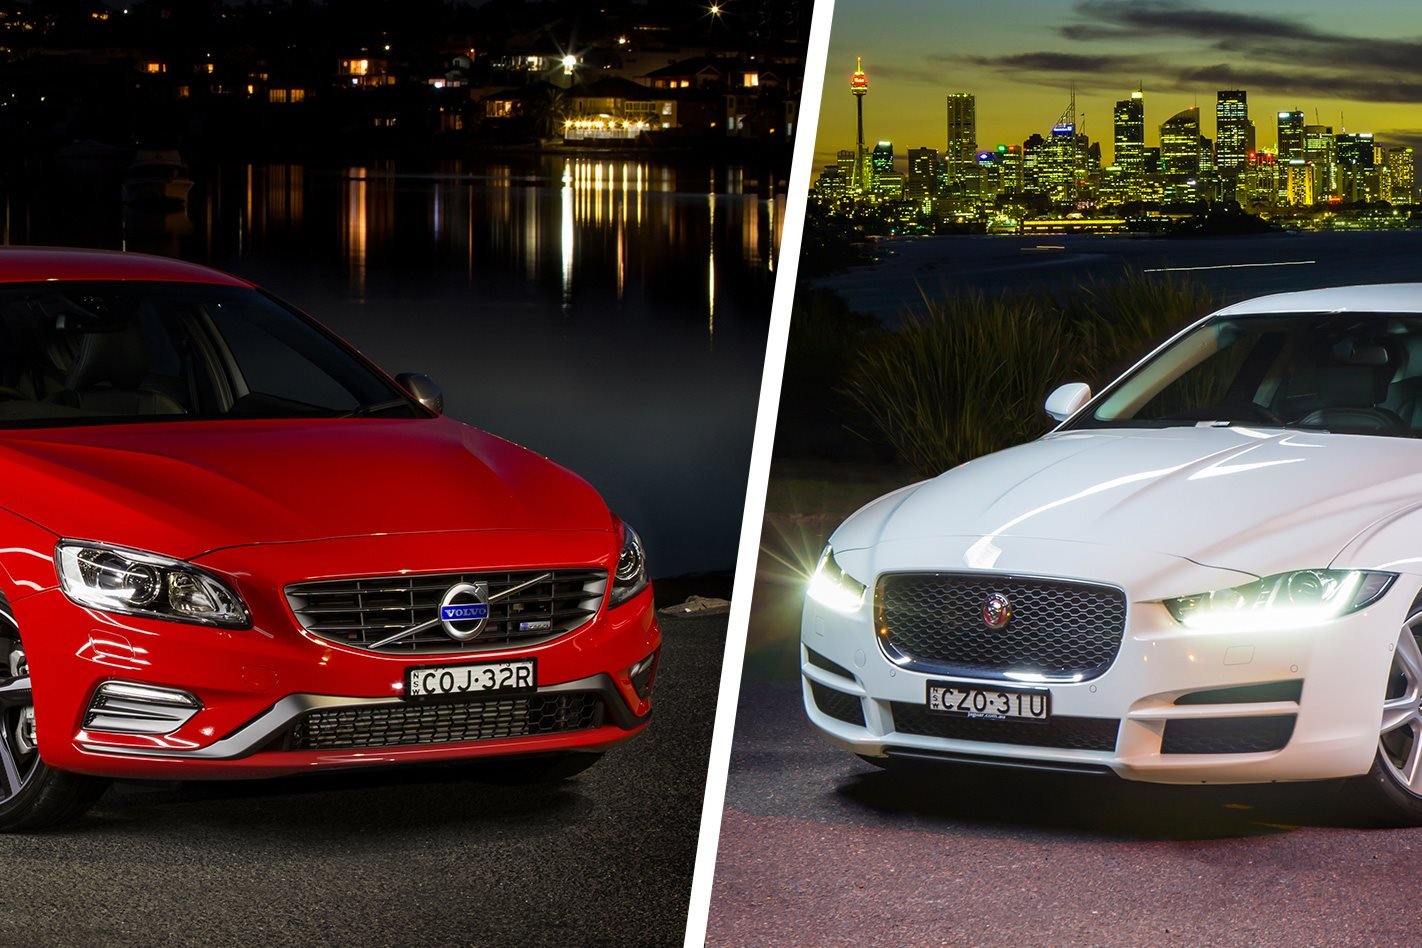 jaguar xe v volvo s60 comparison review. Black Bedroom Furniture Sets. Home Design Ideas